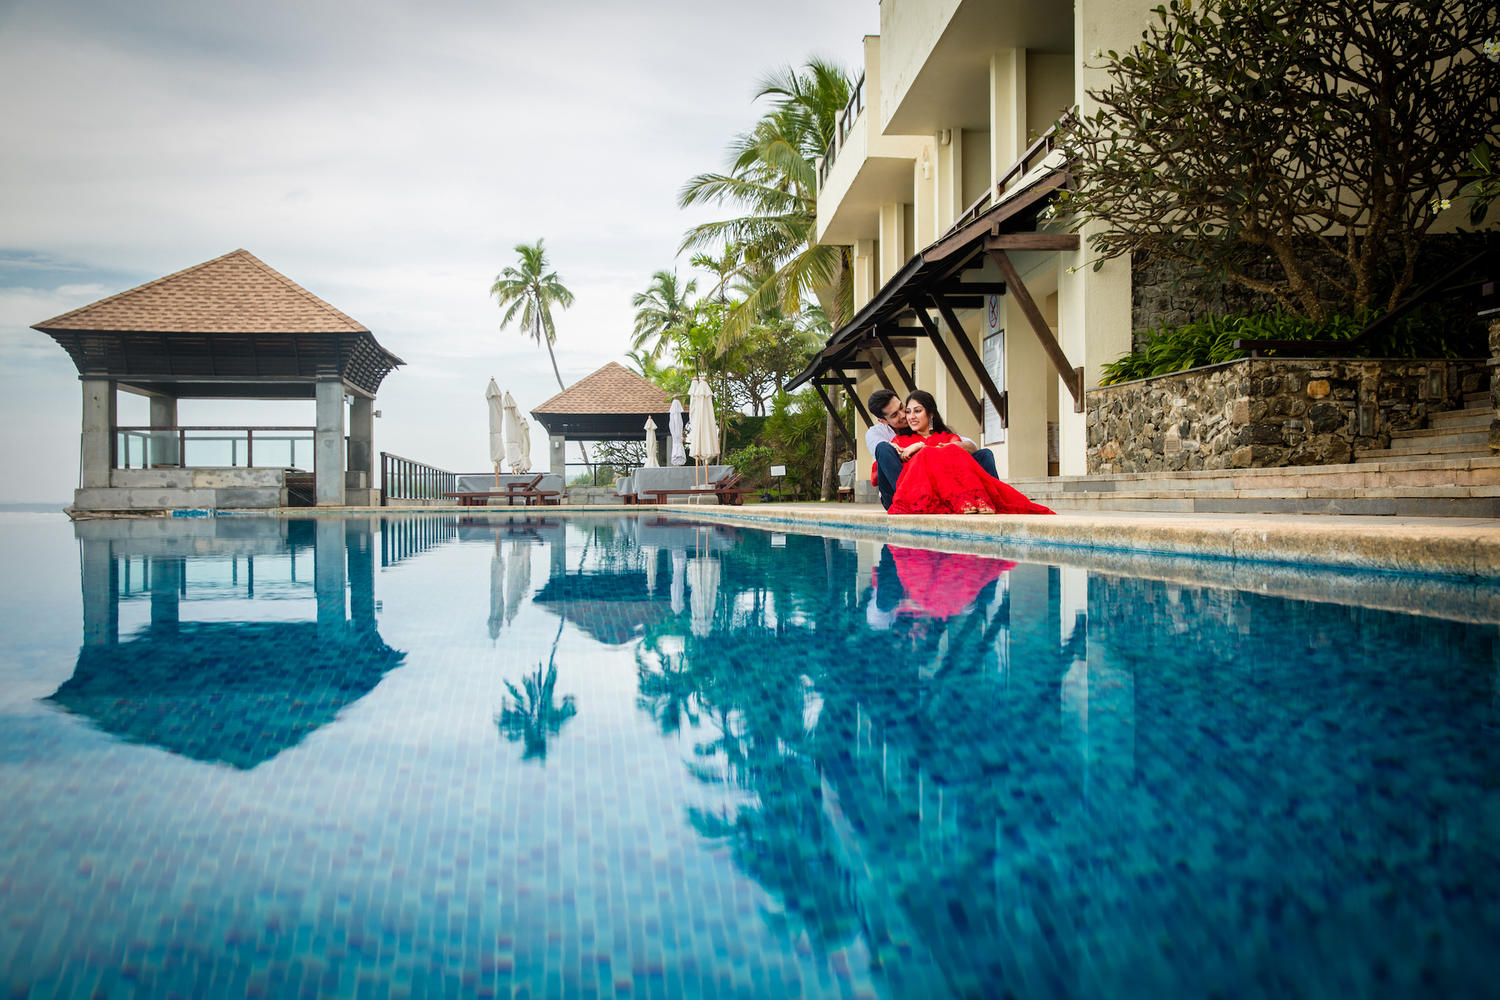 Poolside romantic Prewedding Kerala Kovalam Backwaters destination wedding